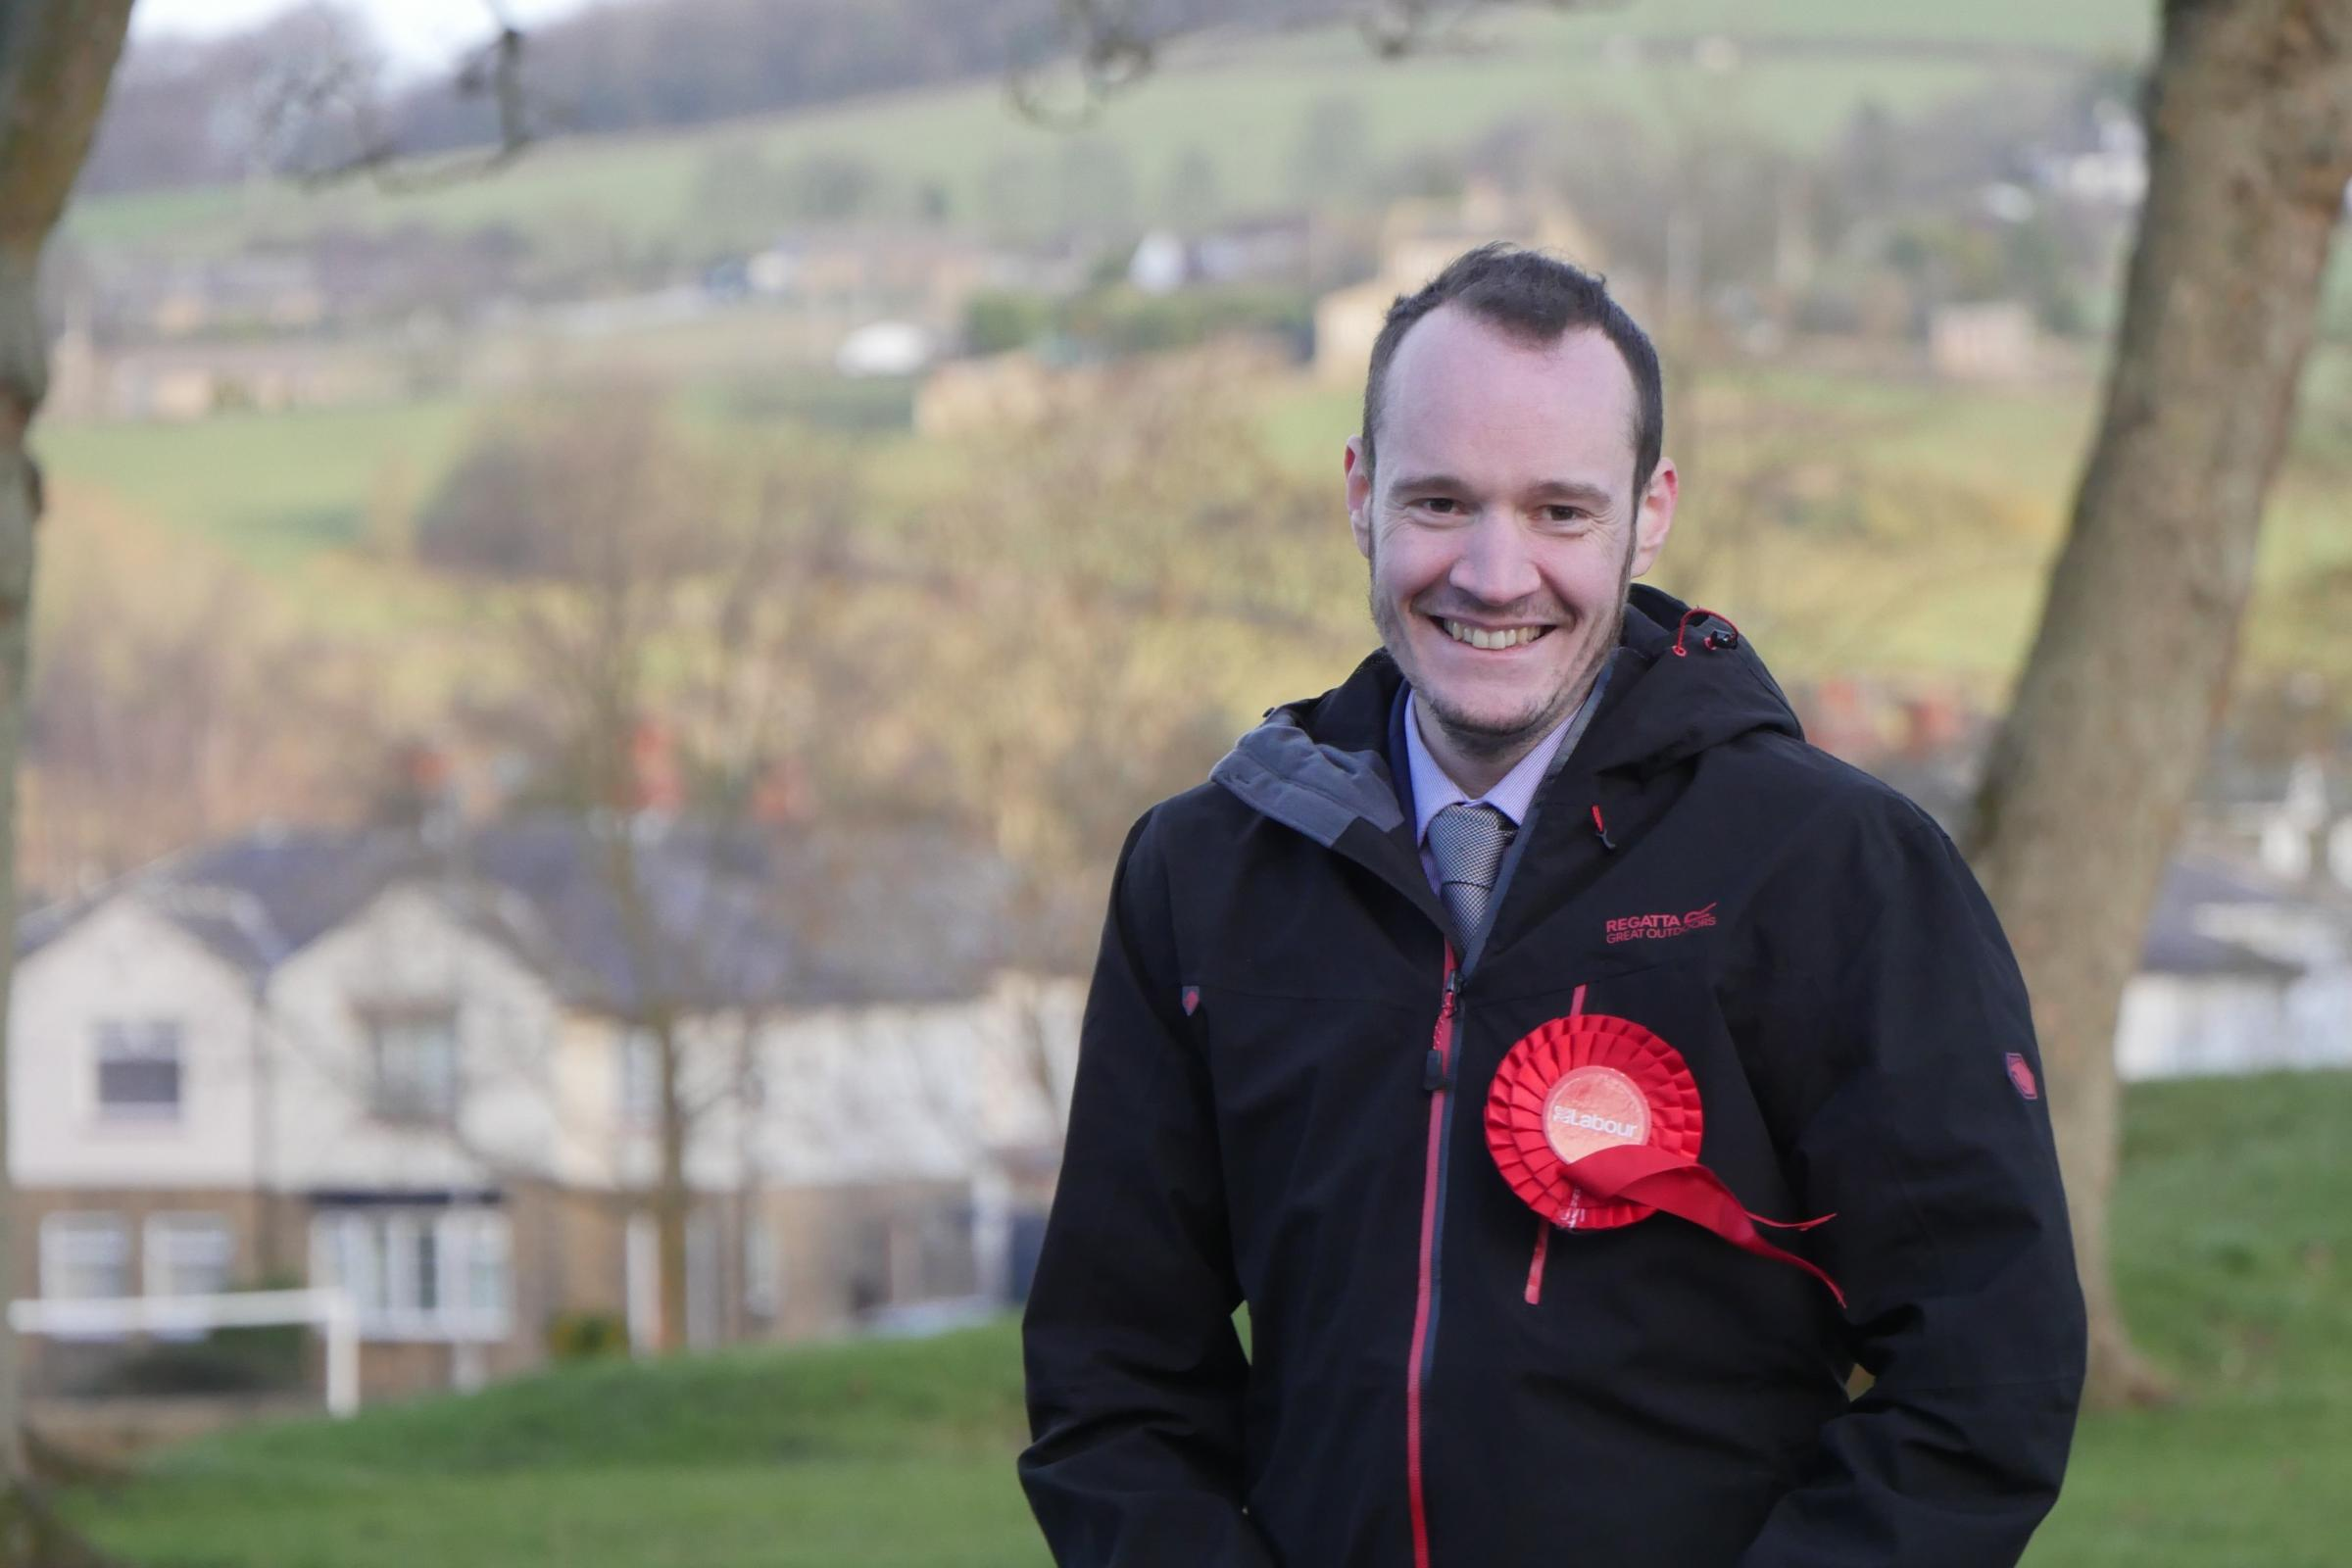 Chris Hayden who has been chosen to contest the Wharfedale seat for Labour in the upcoming Bradford Council Elections in early May